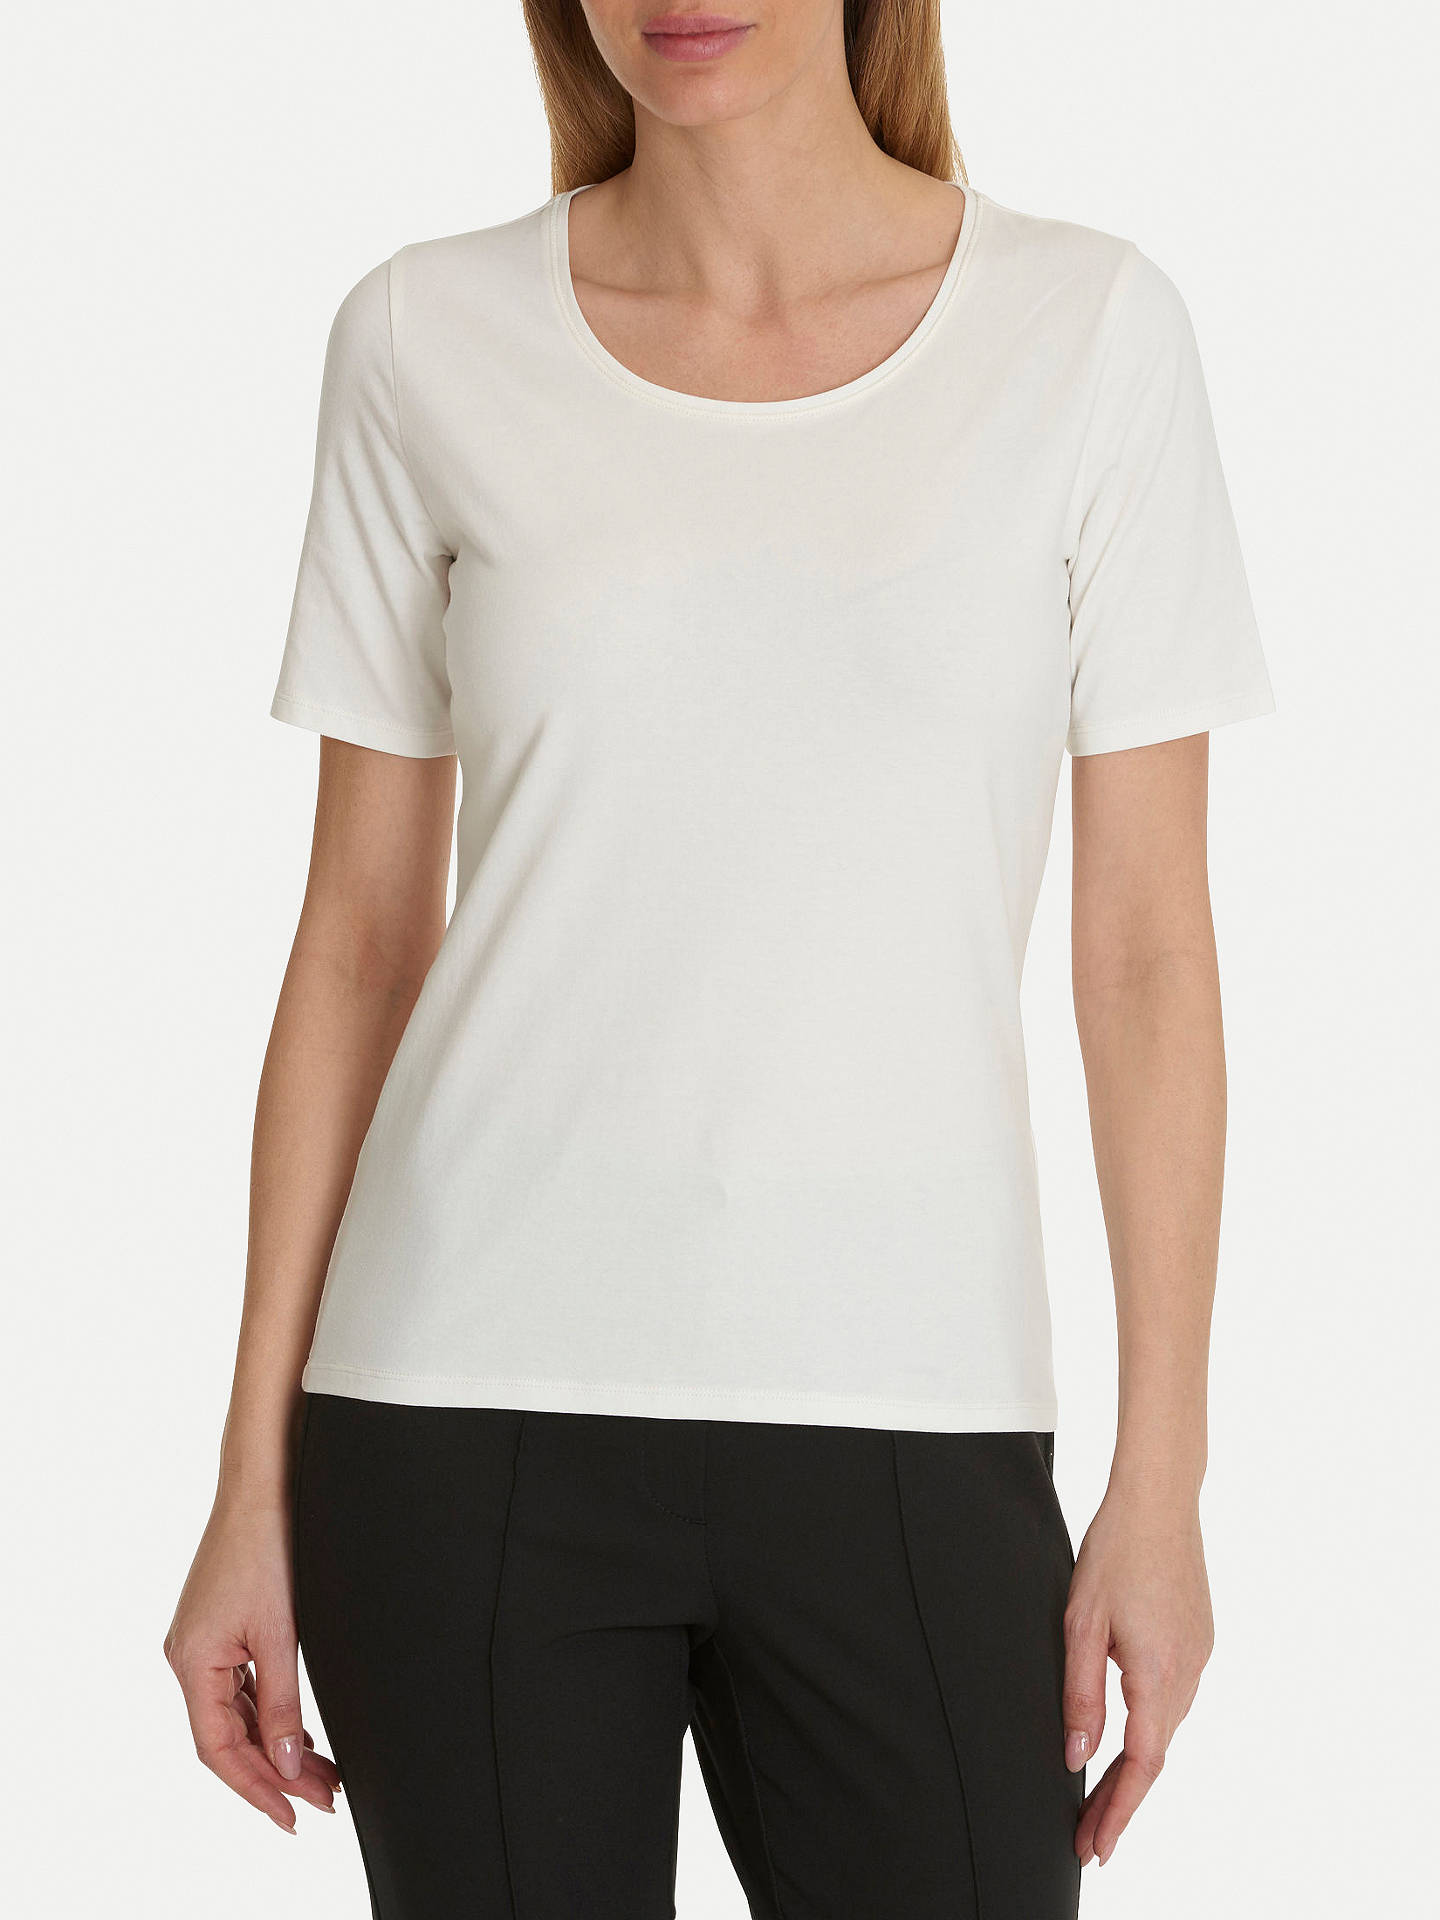 BuyBetty Barclay Short Sleeve T-Shirt, Off White, 20 Online at johnlewis.com